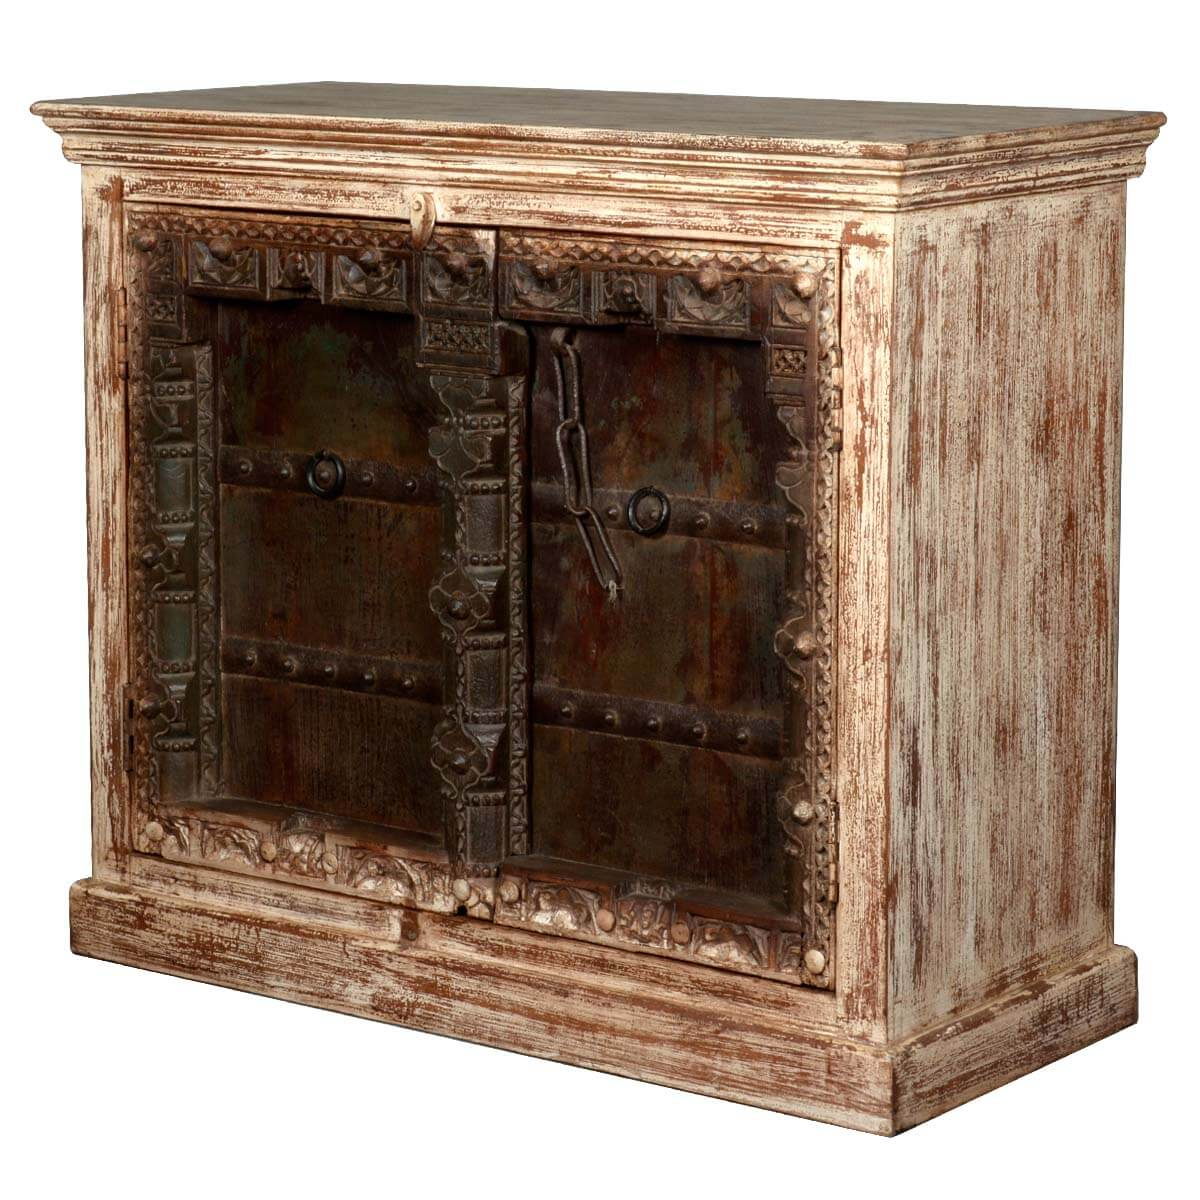 Reclaimed Wood Furniture Gothic Antique Rustic Sideboard